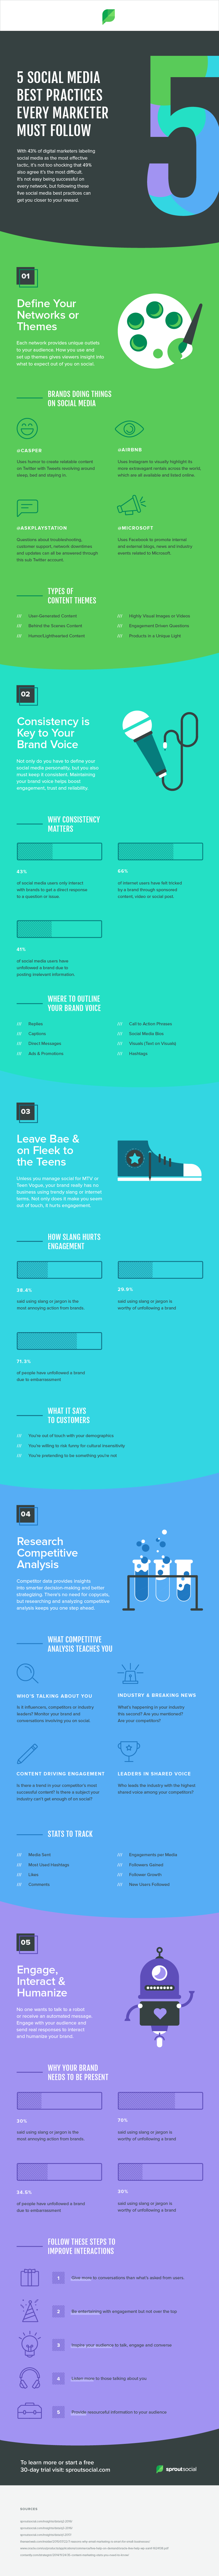 social media best practices infographic